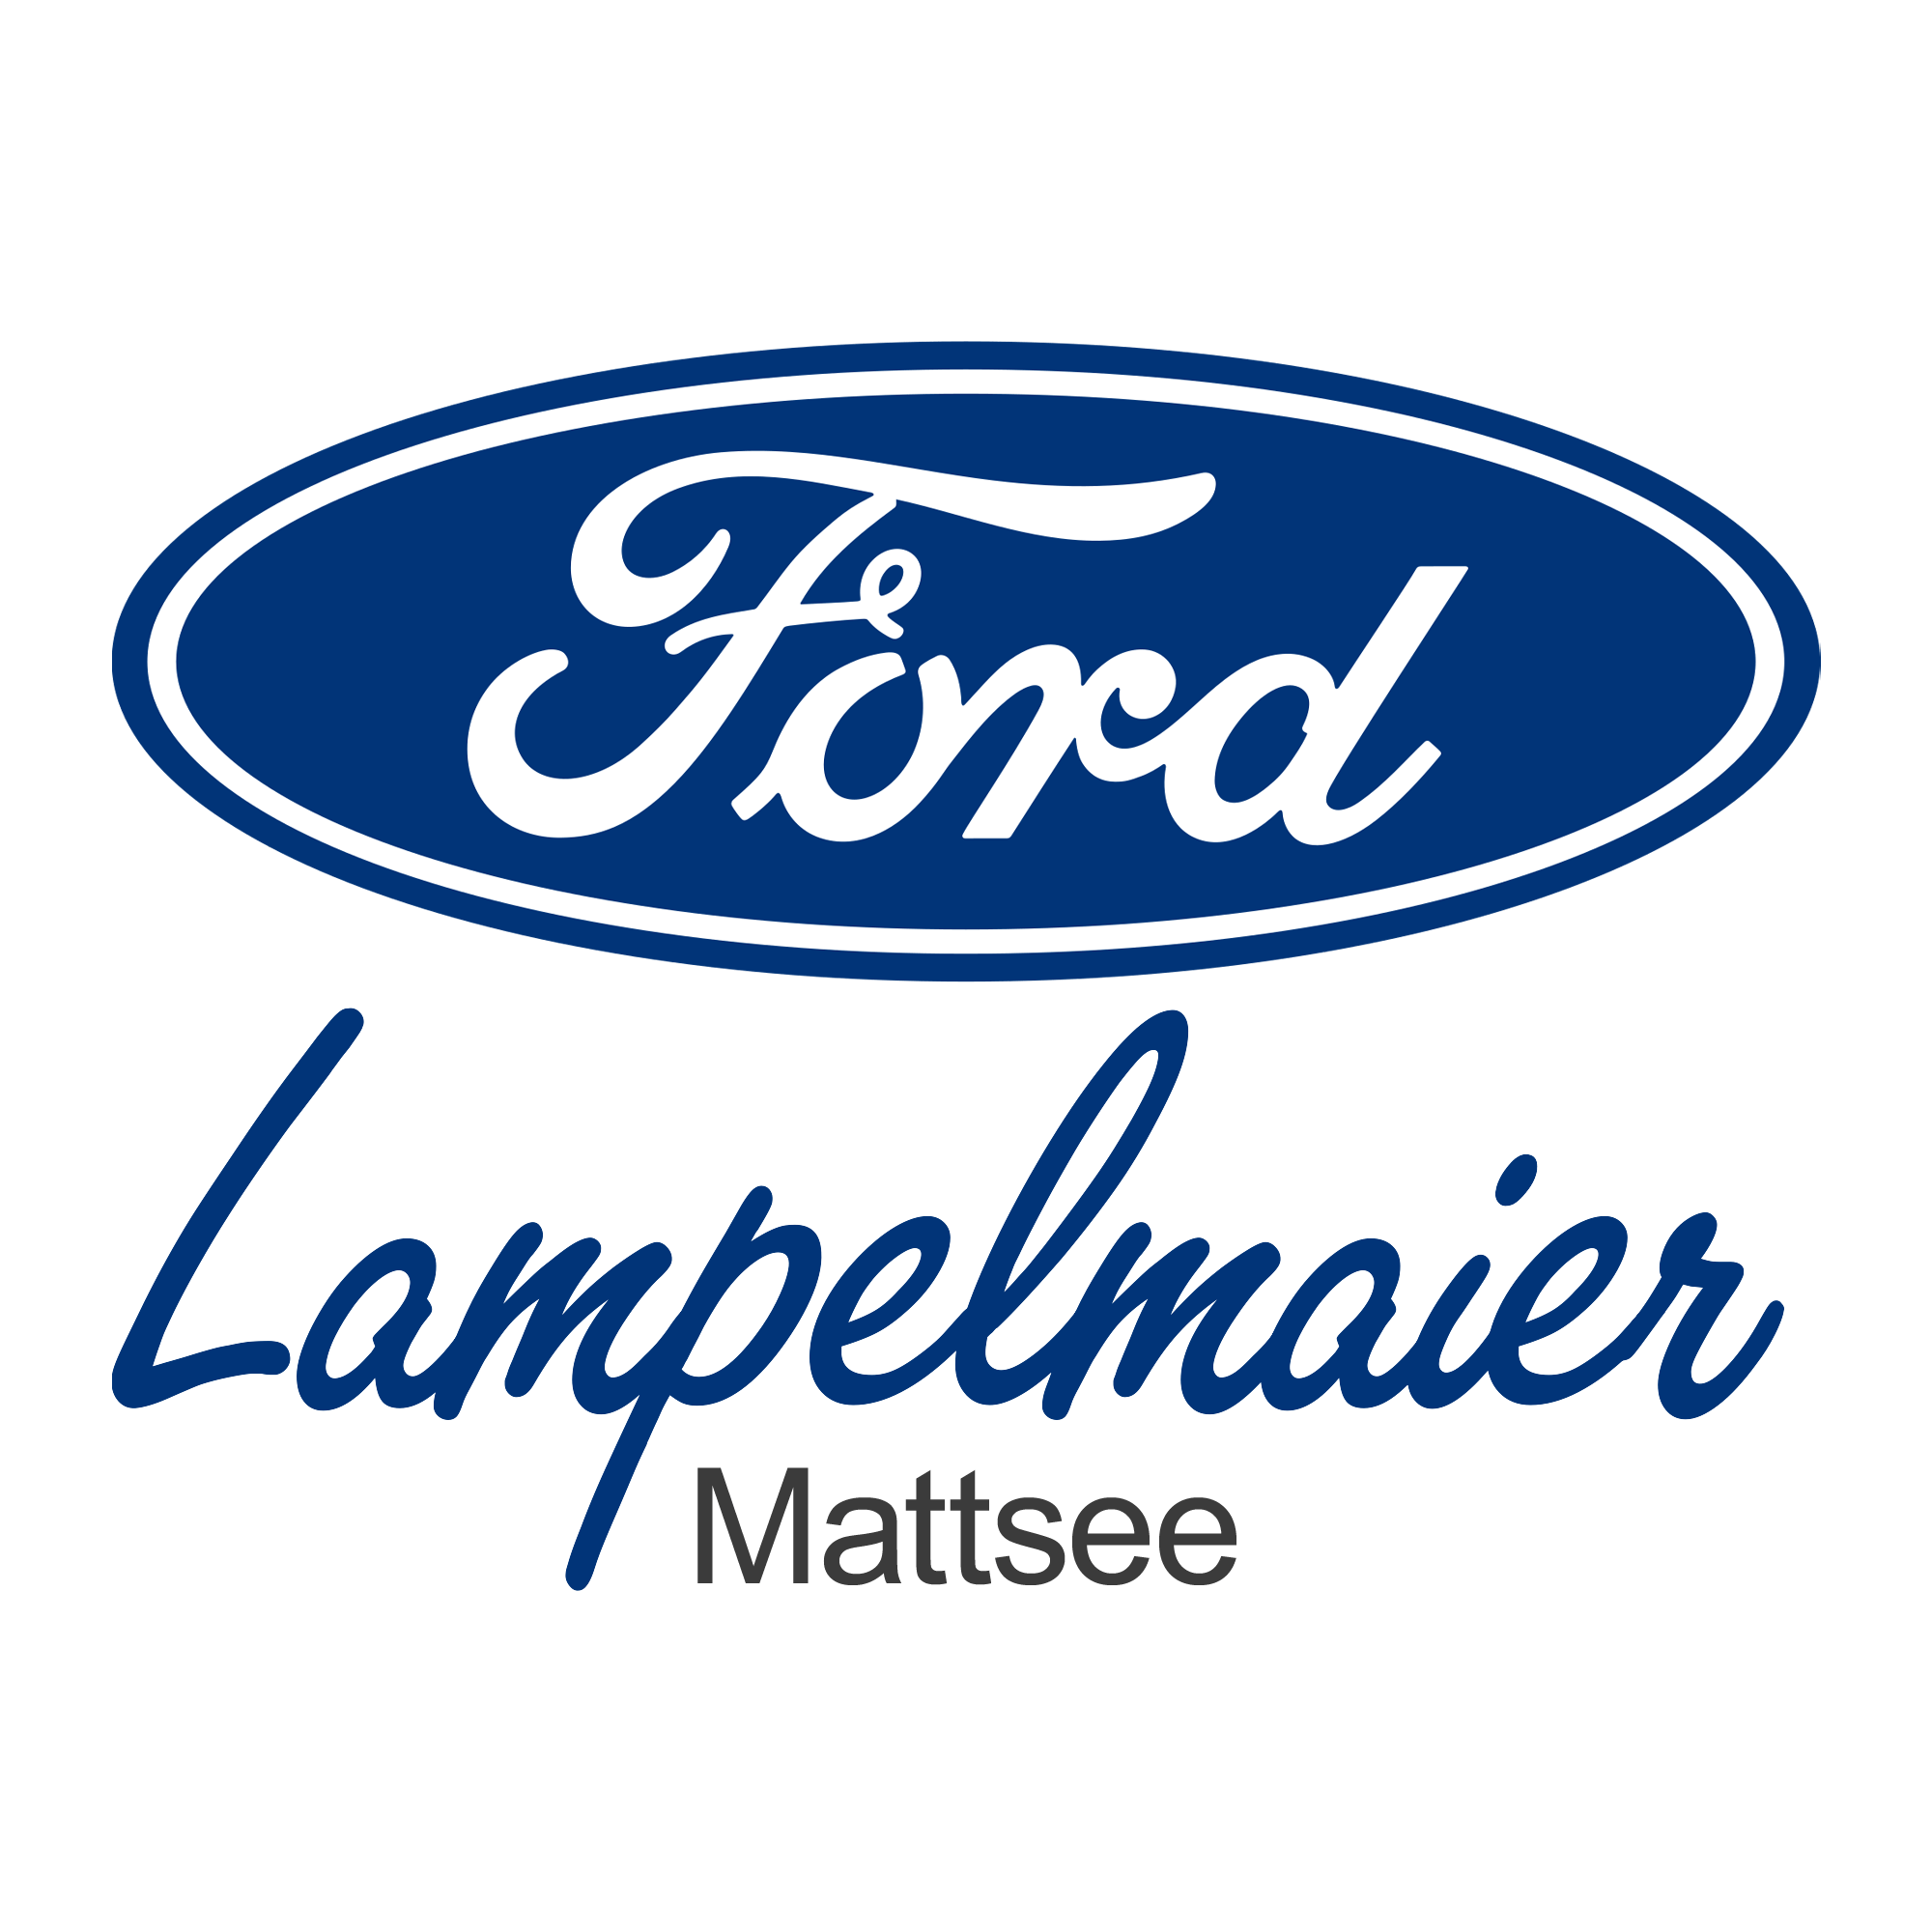 Ford Lampelmaier Mattsee Browser Favicon